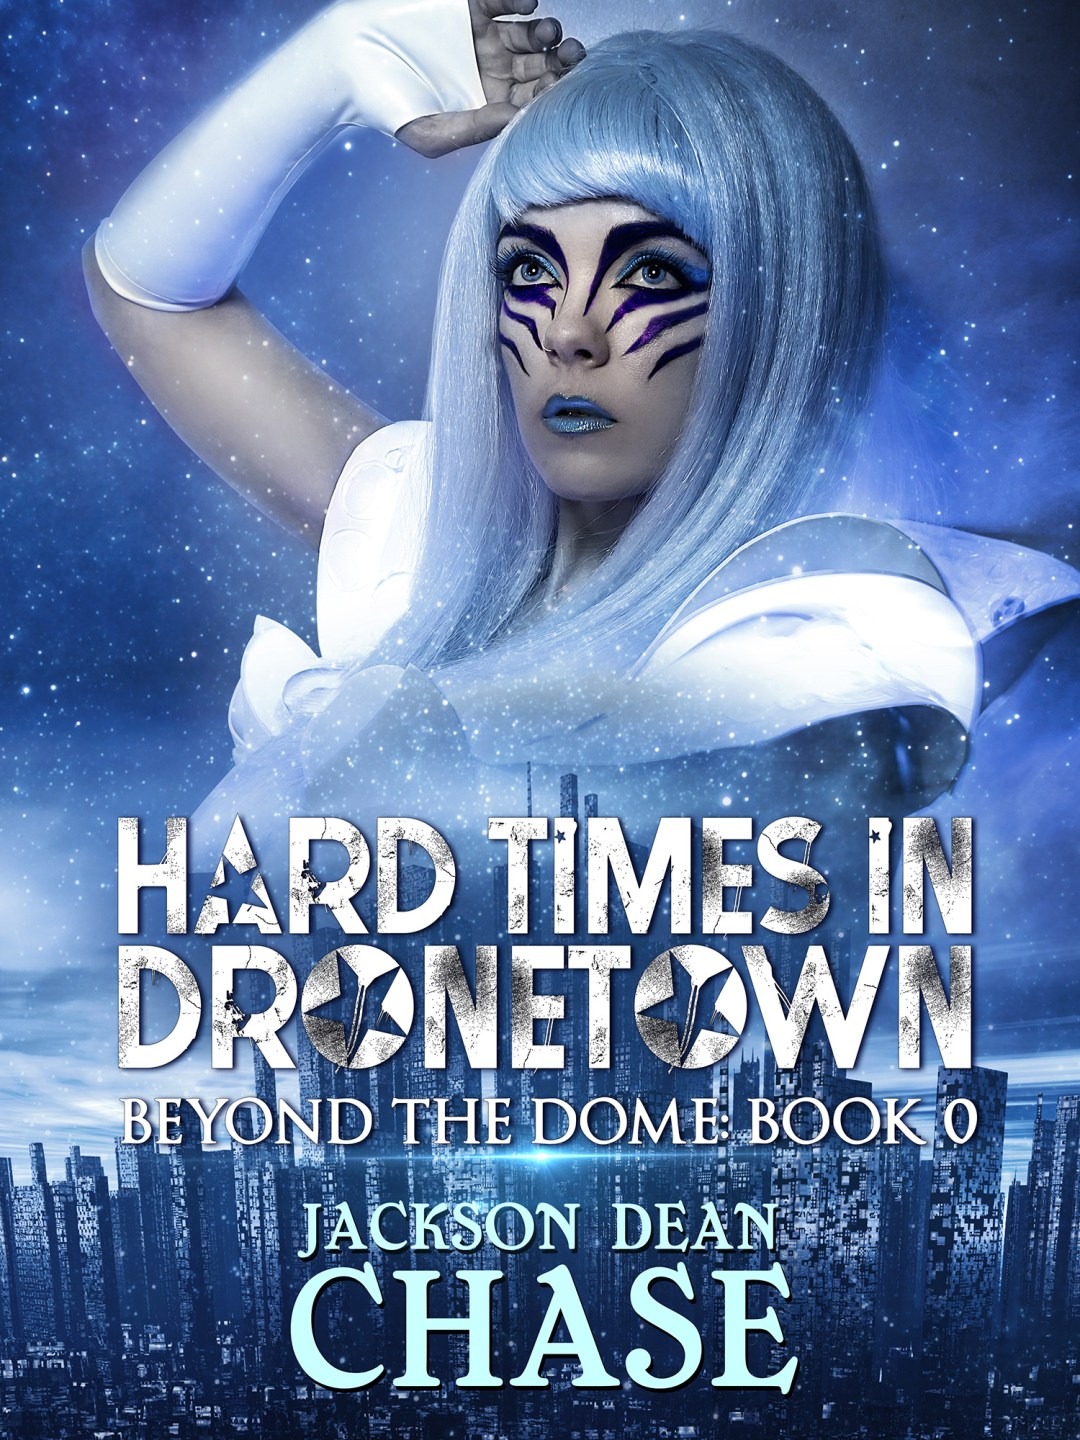 Hard Times in Dronetown by Jackson Dean Chase